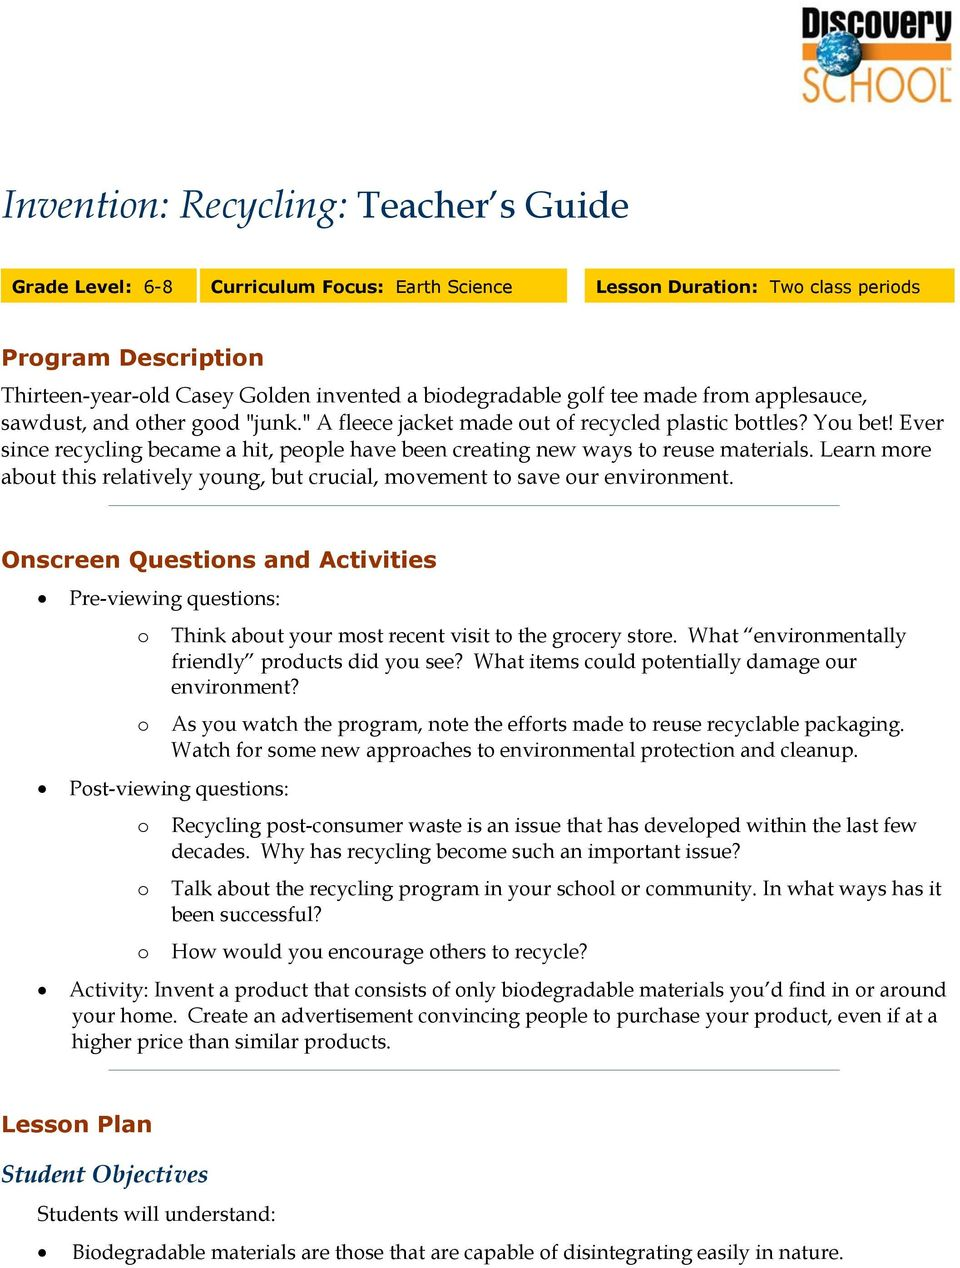 Invention: Recycling: Teacher s Guide - PDF